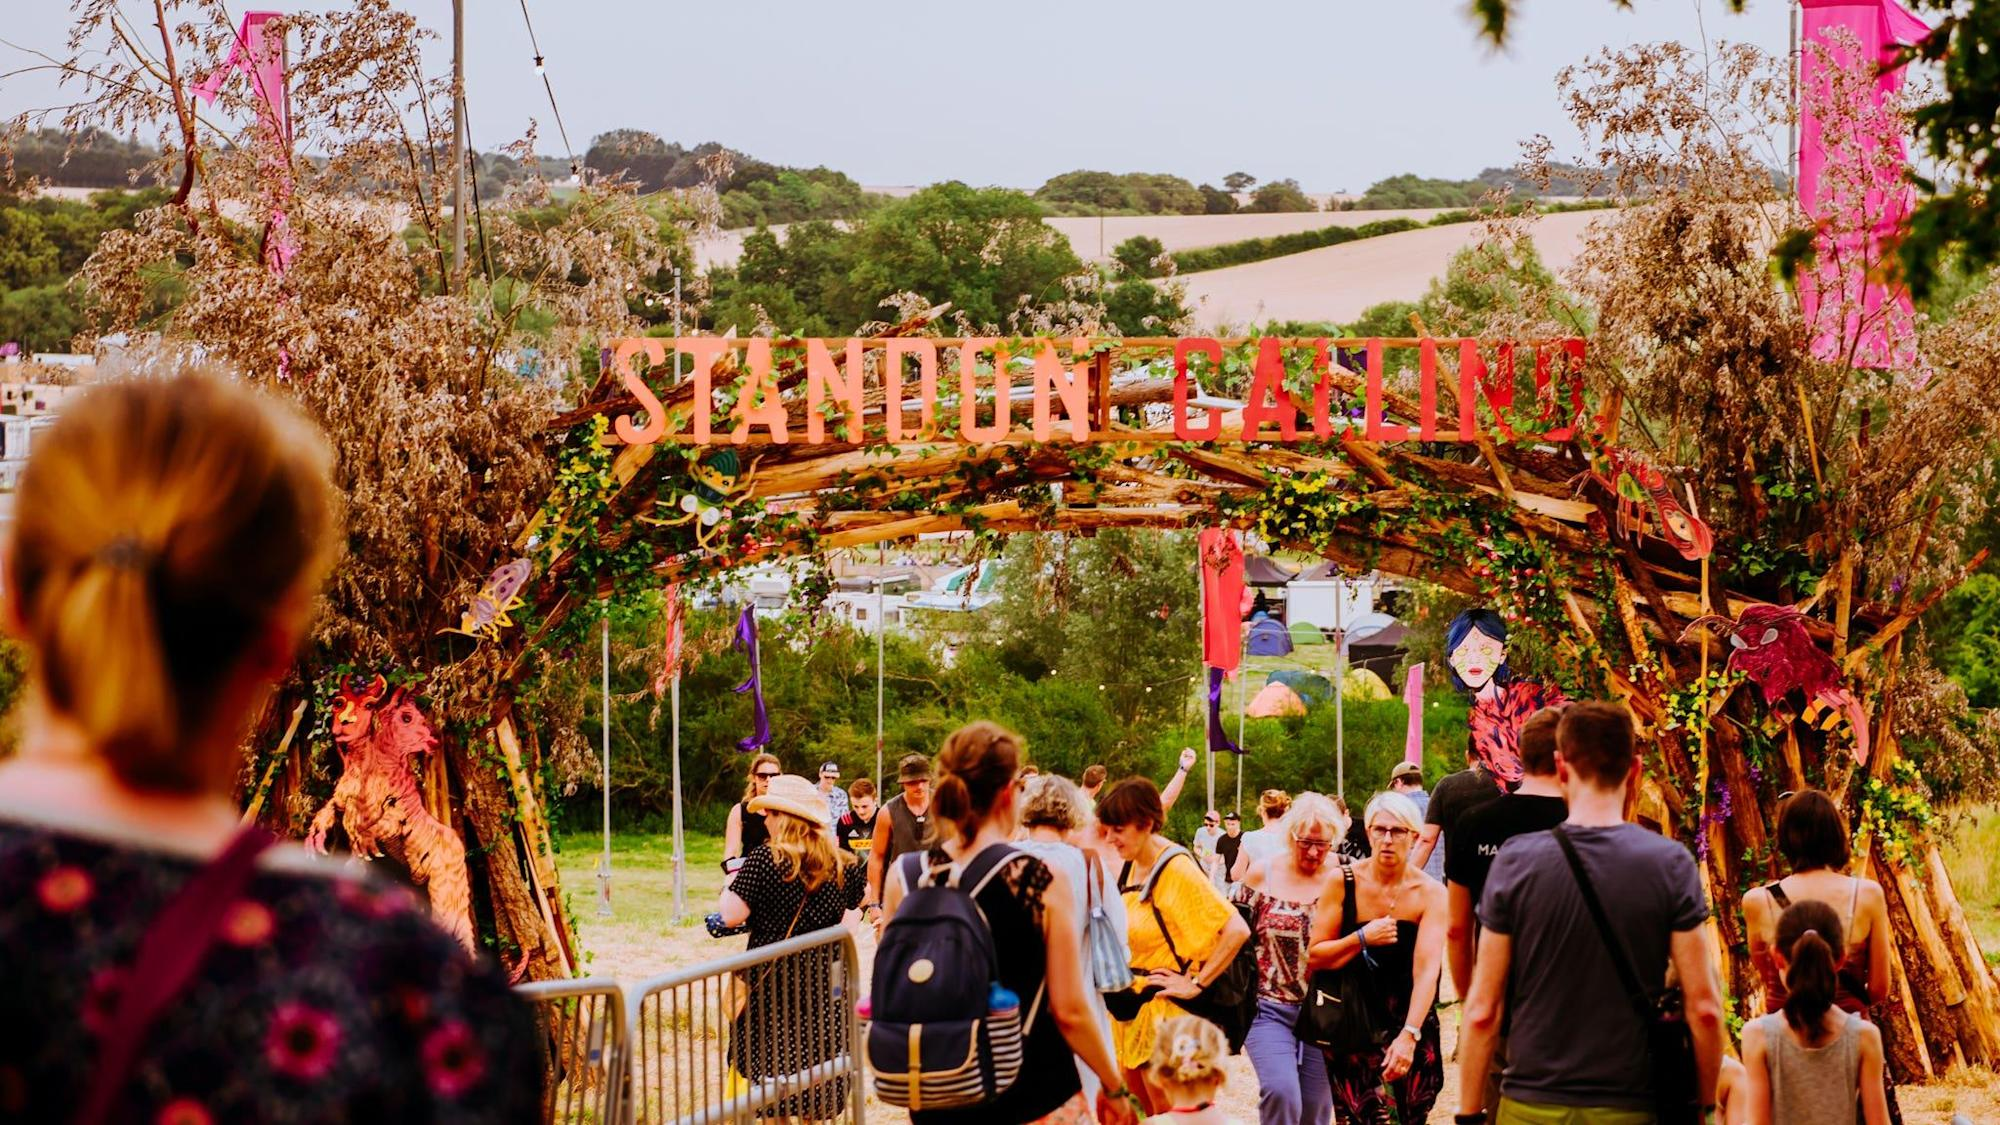 Standon Calling music festival announces early summer dates